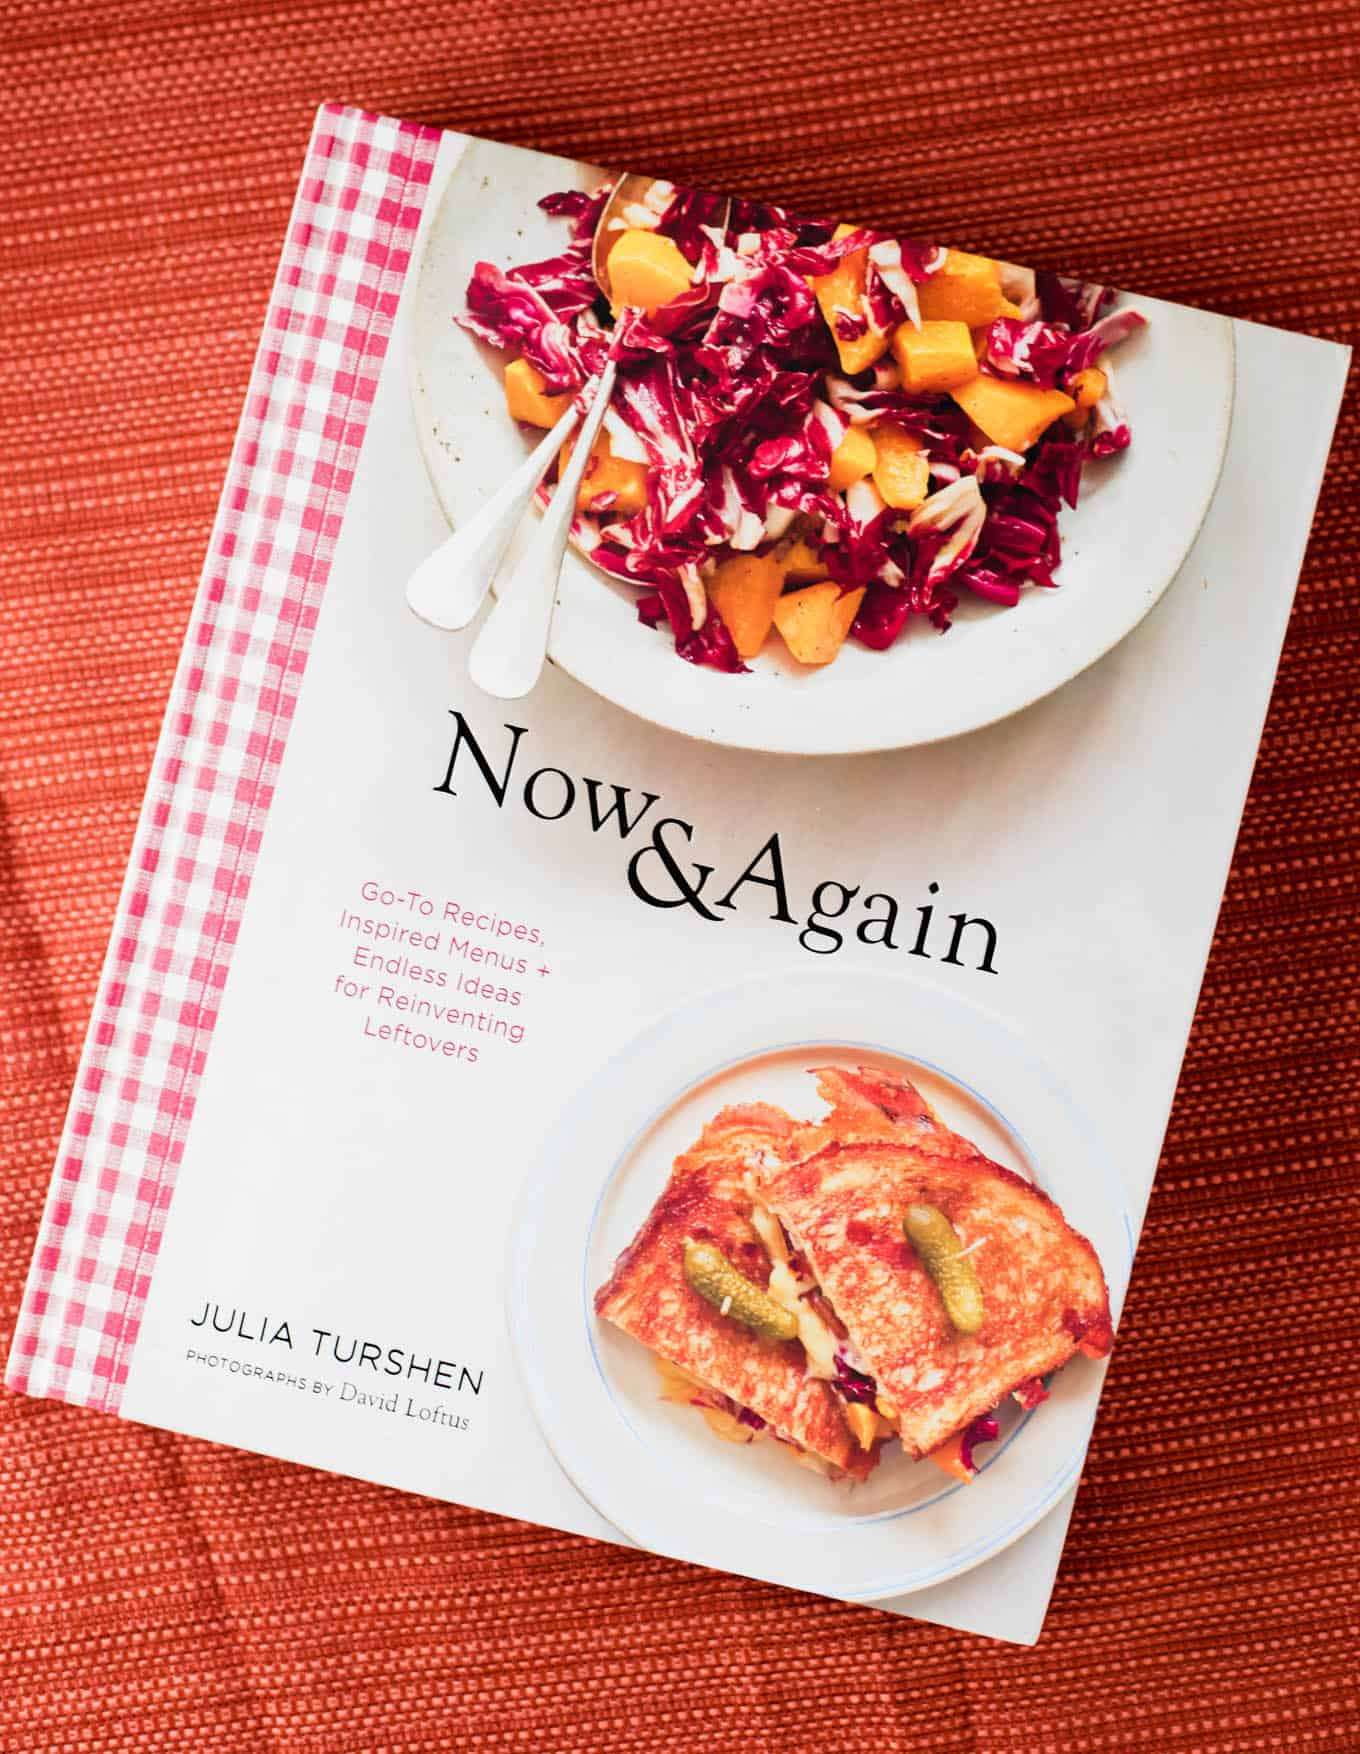 A cookbook on a table.